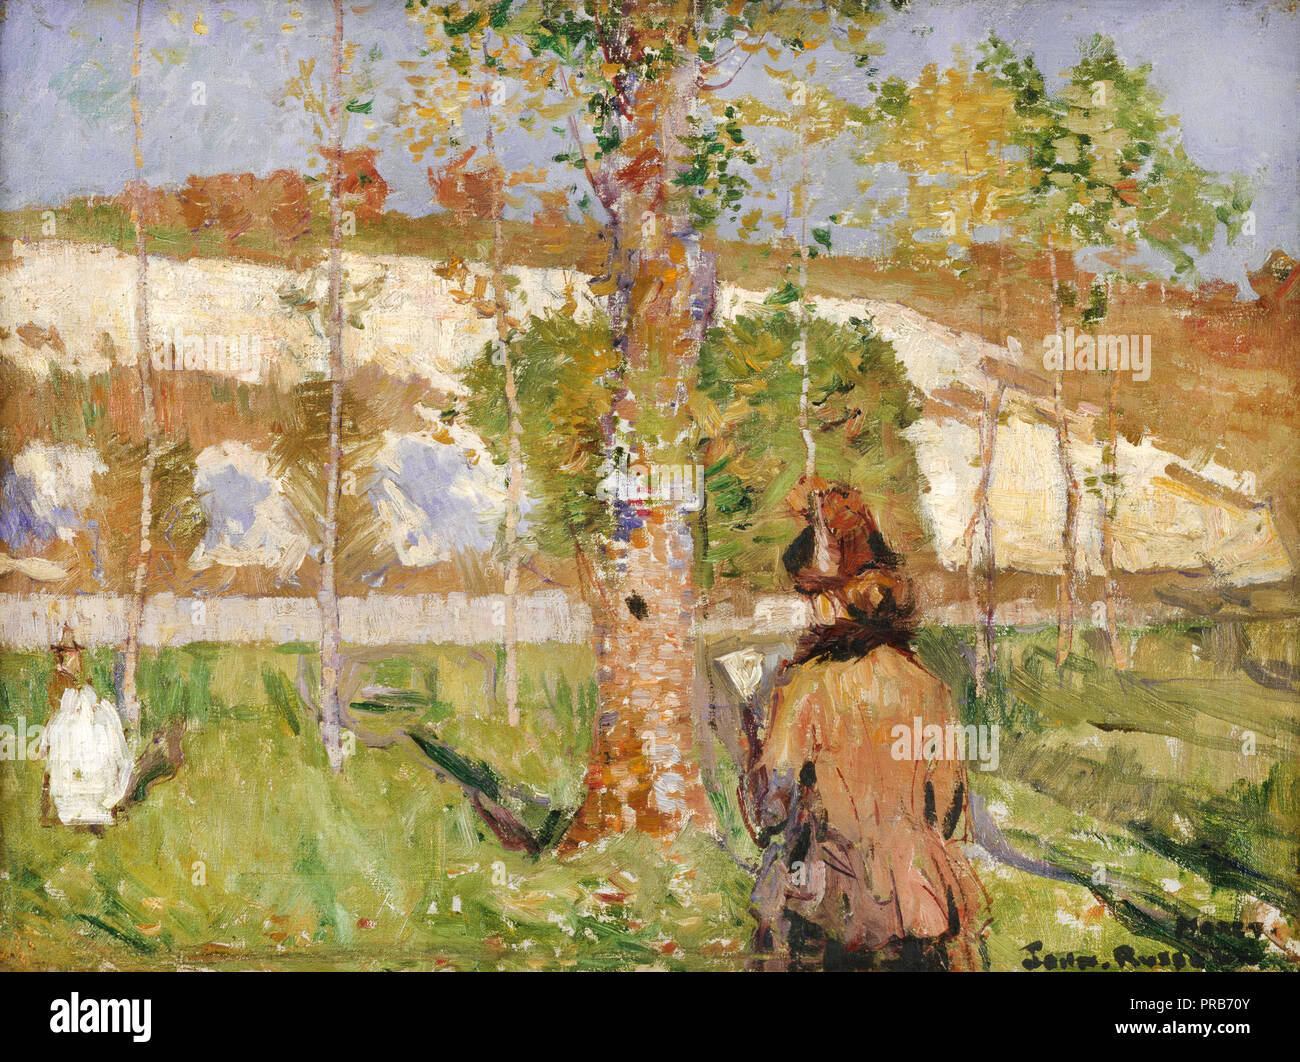 John Peter Russell, Madame Sisley on the Banks of the Loing at Moret 1887 Oil on canvas, Art Gallery of New South Wales, Australia. - Stock Image